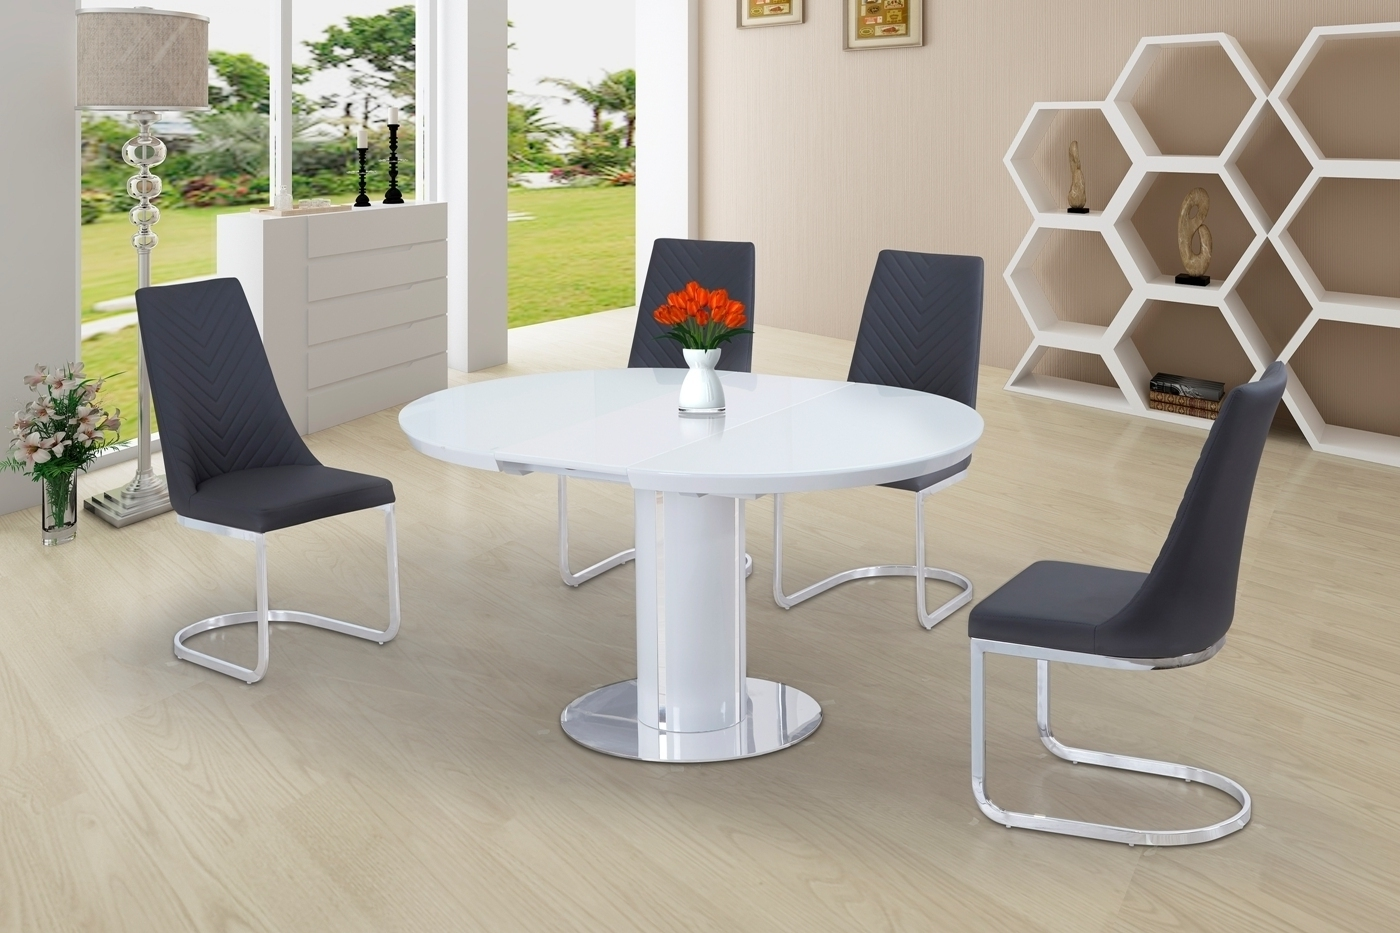 Most Recent White High Gloss Dining Chairs Throughout Round White Glass High Gloss Dining Table And 6 Grey Chairs (View 12 of 25)